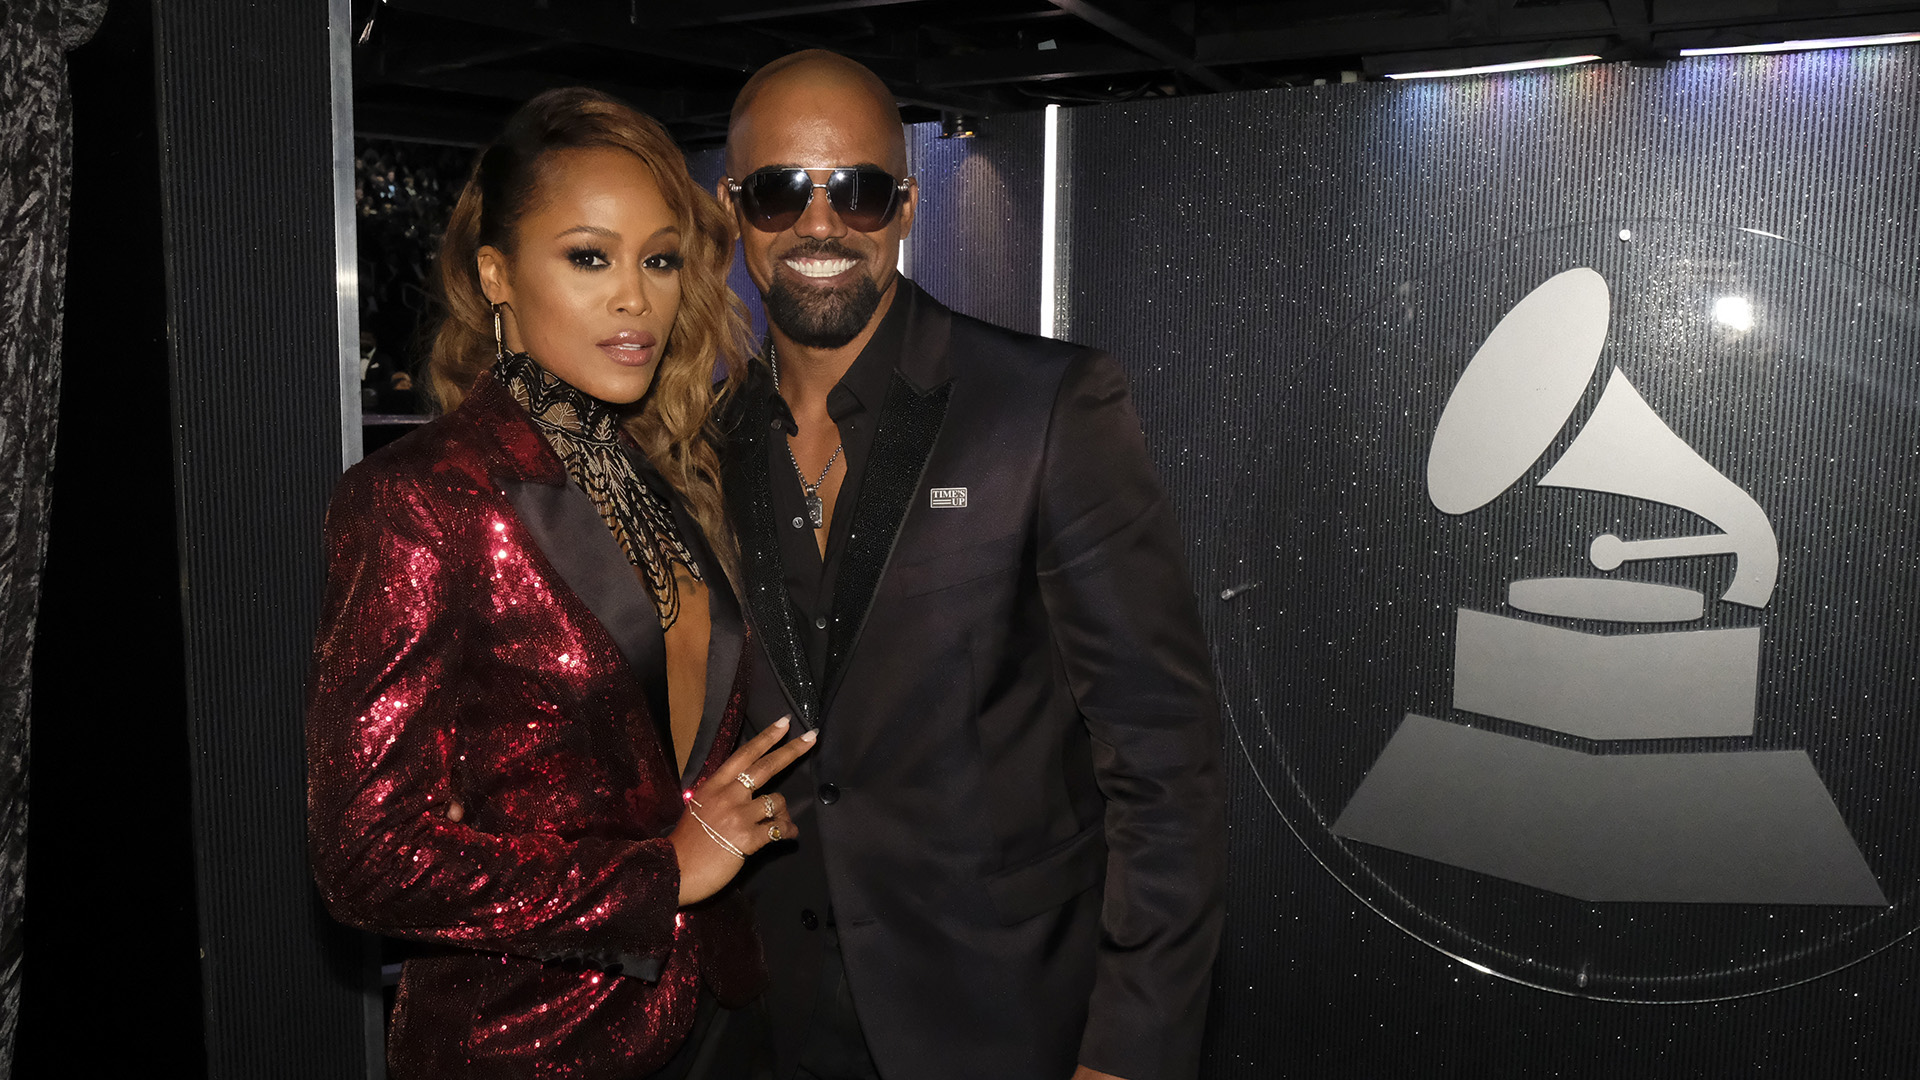 Rap Queen and The Talk host Eve poses for the camera with S.W.A.T. star Shemar Moore.